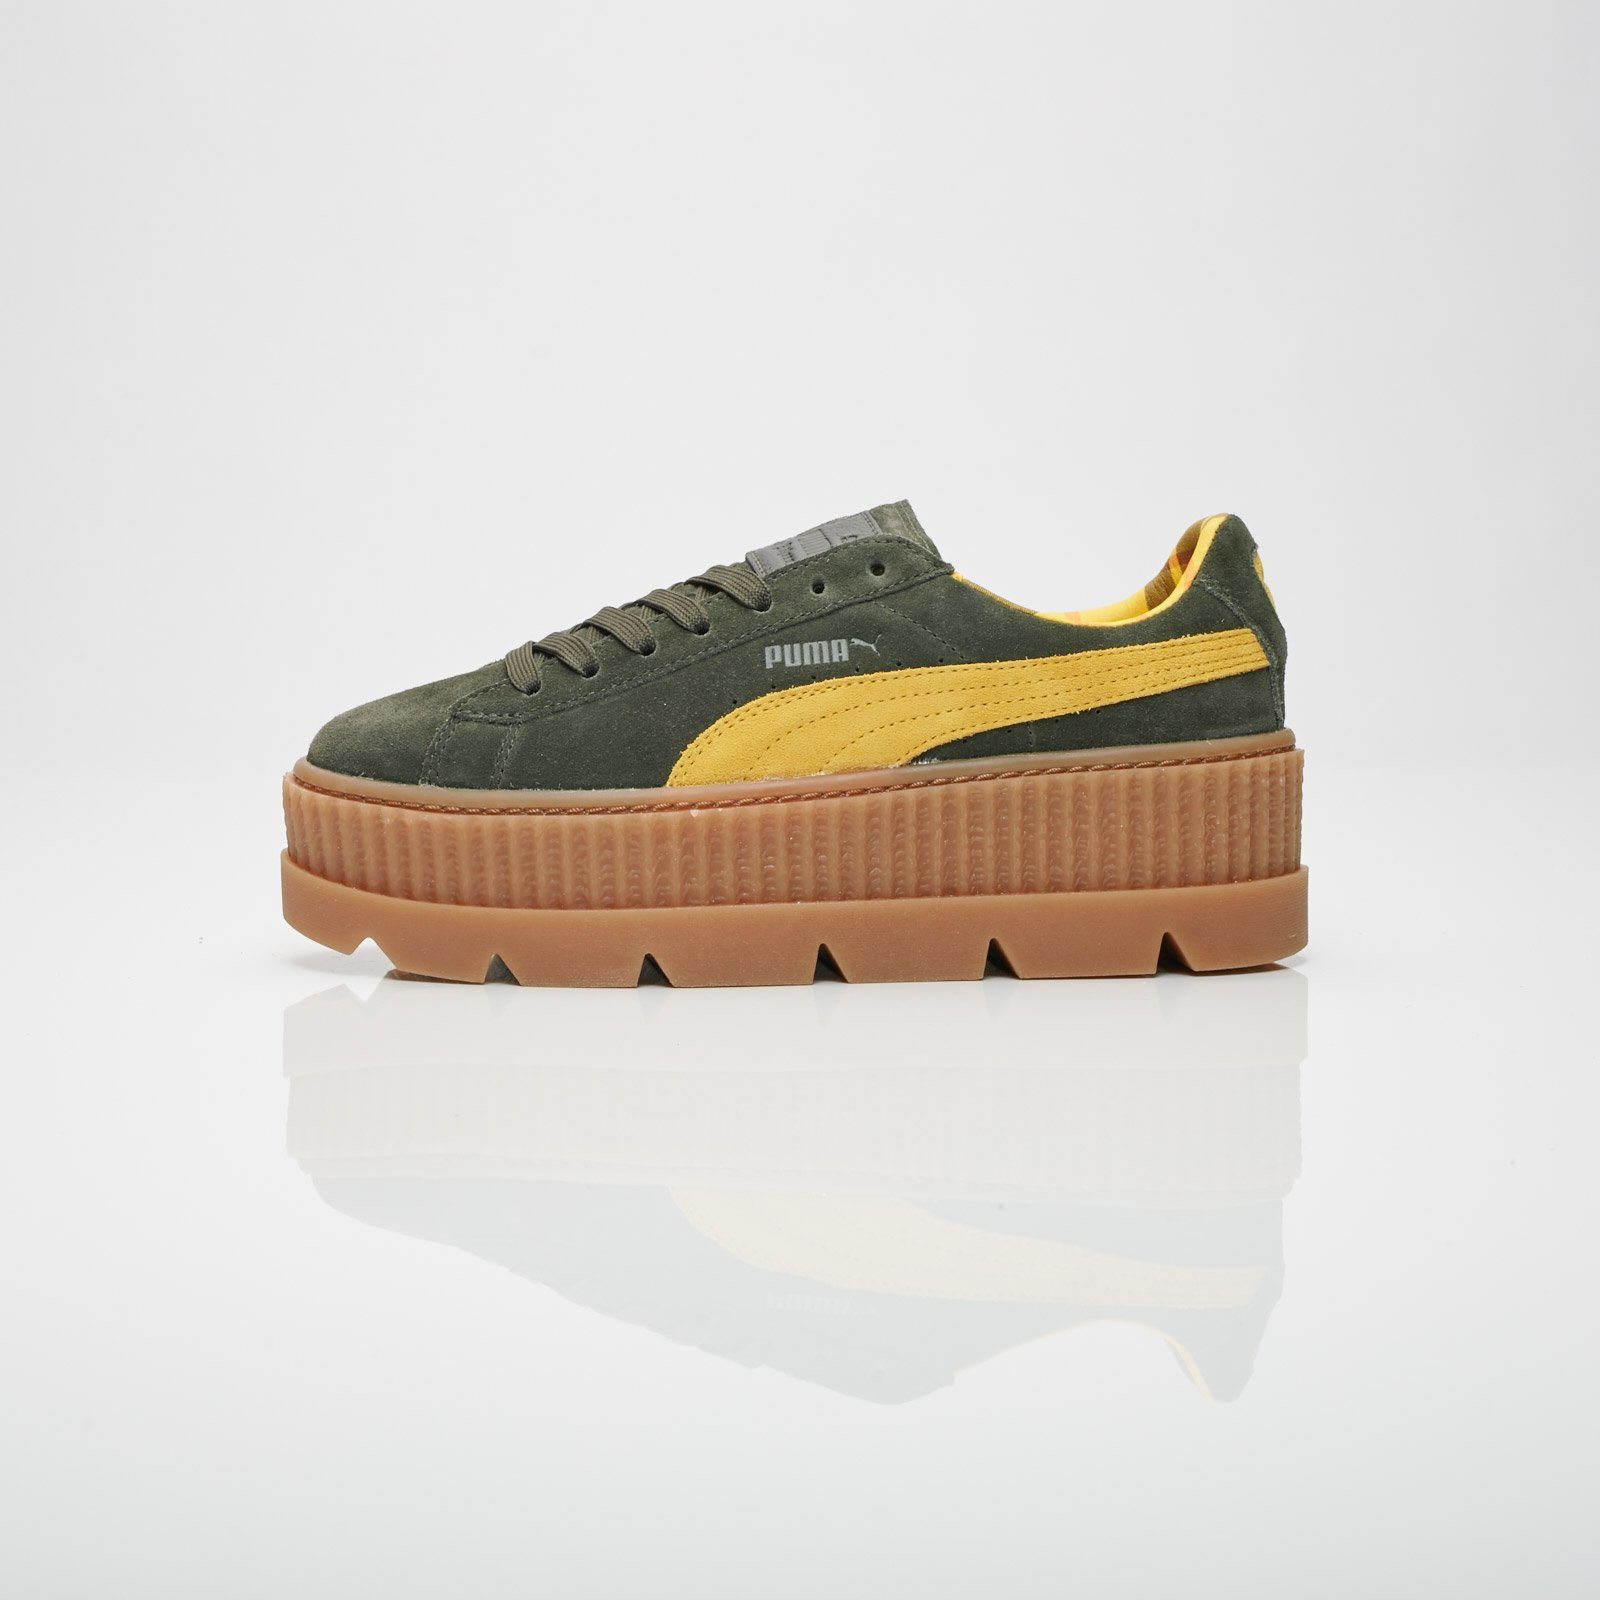 075f3aec39d0fc Puma Cleated Creeper Suede Wns - 366268-01 - Sneakersnstuff ...